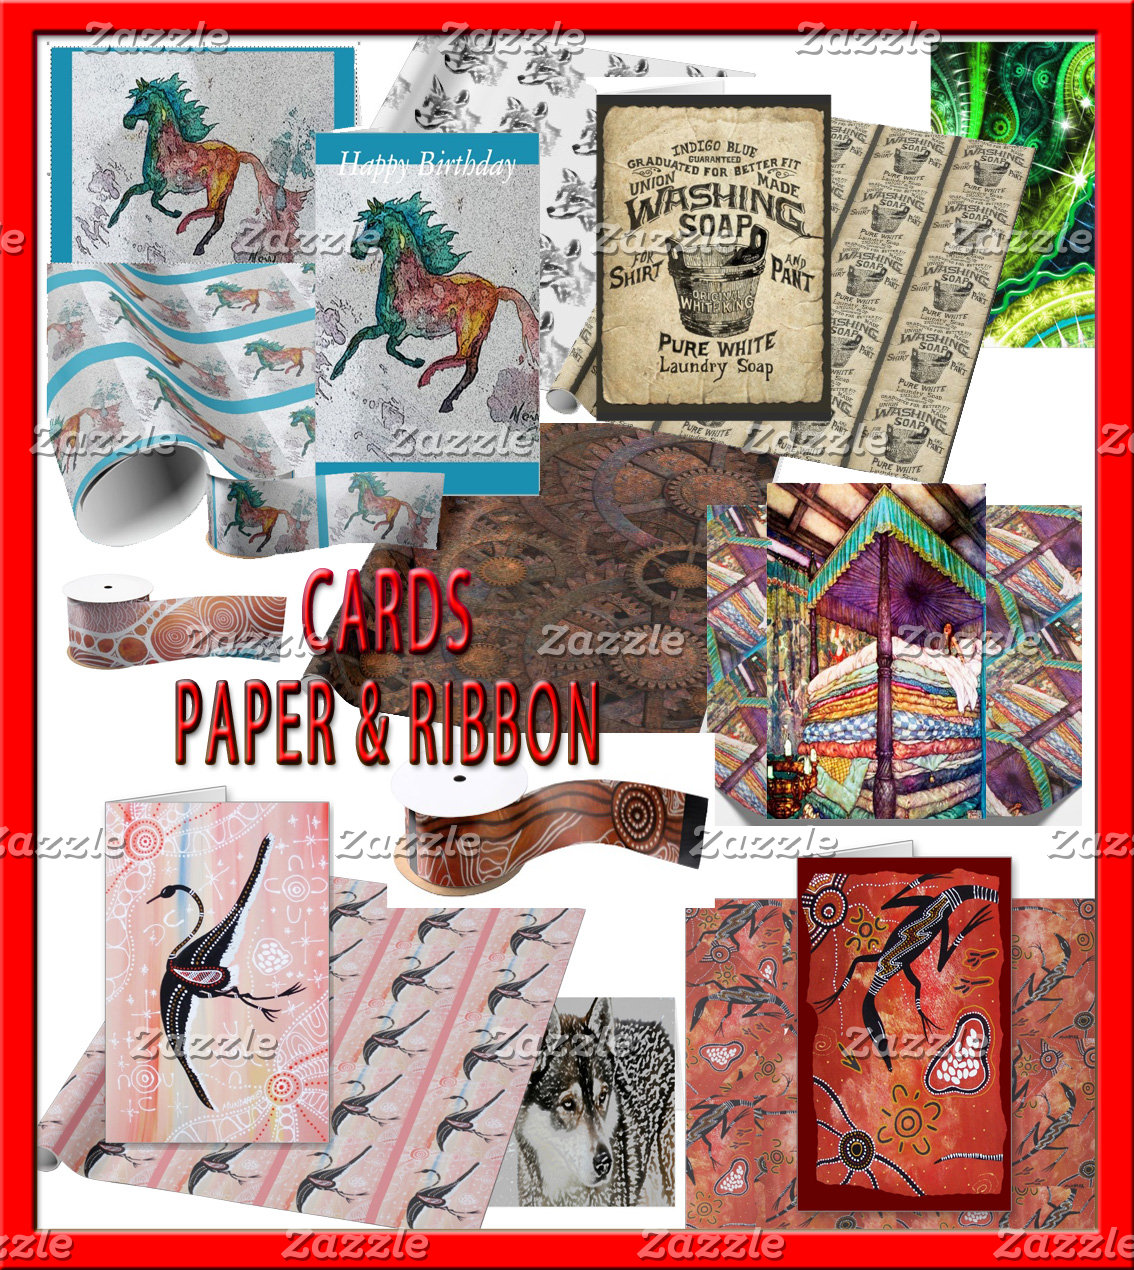 CARDS PAPER RIBBON